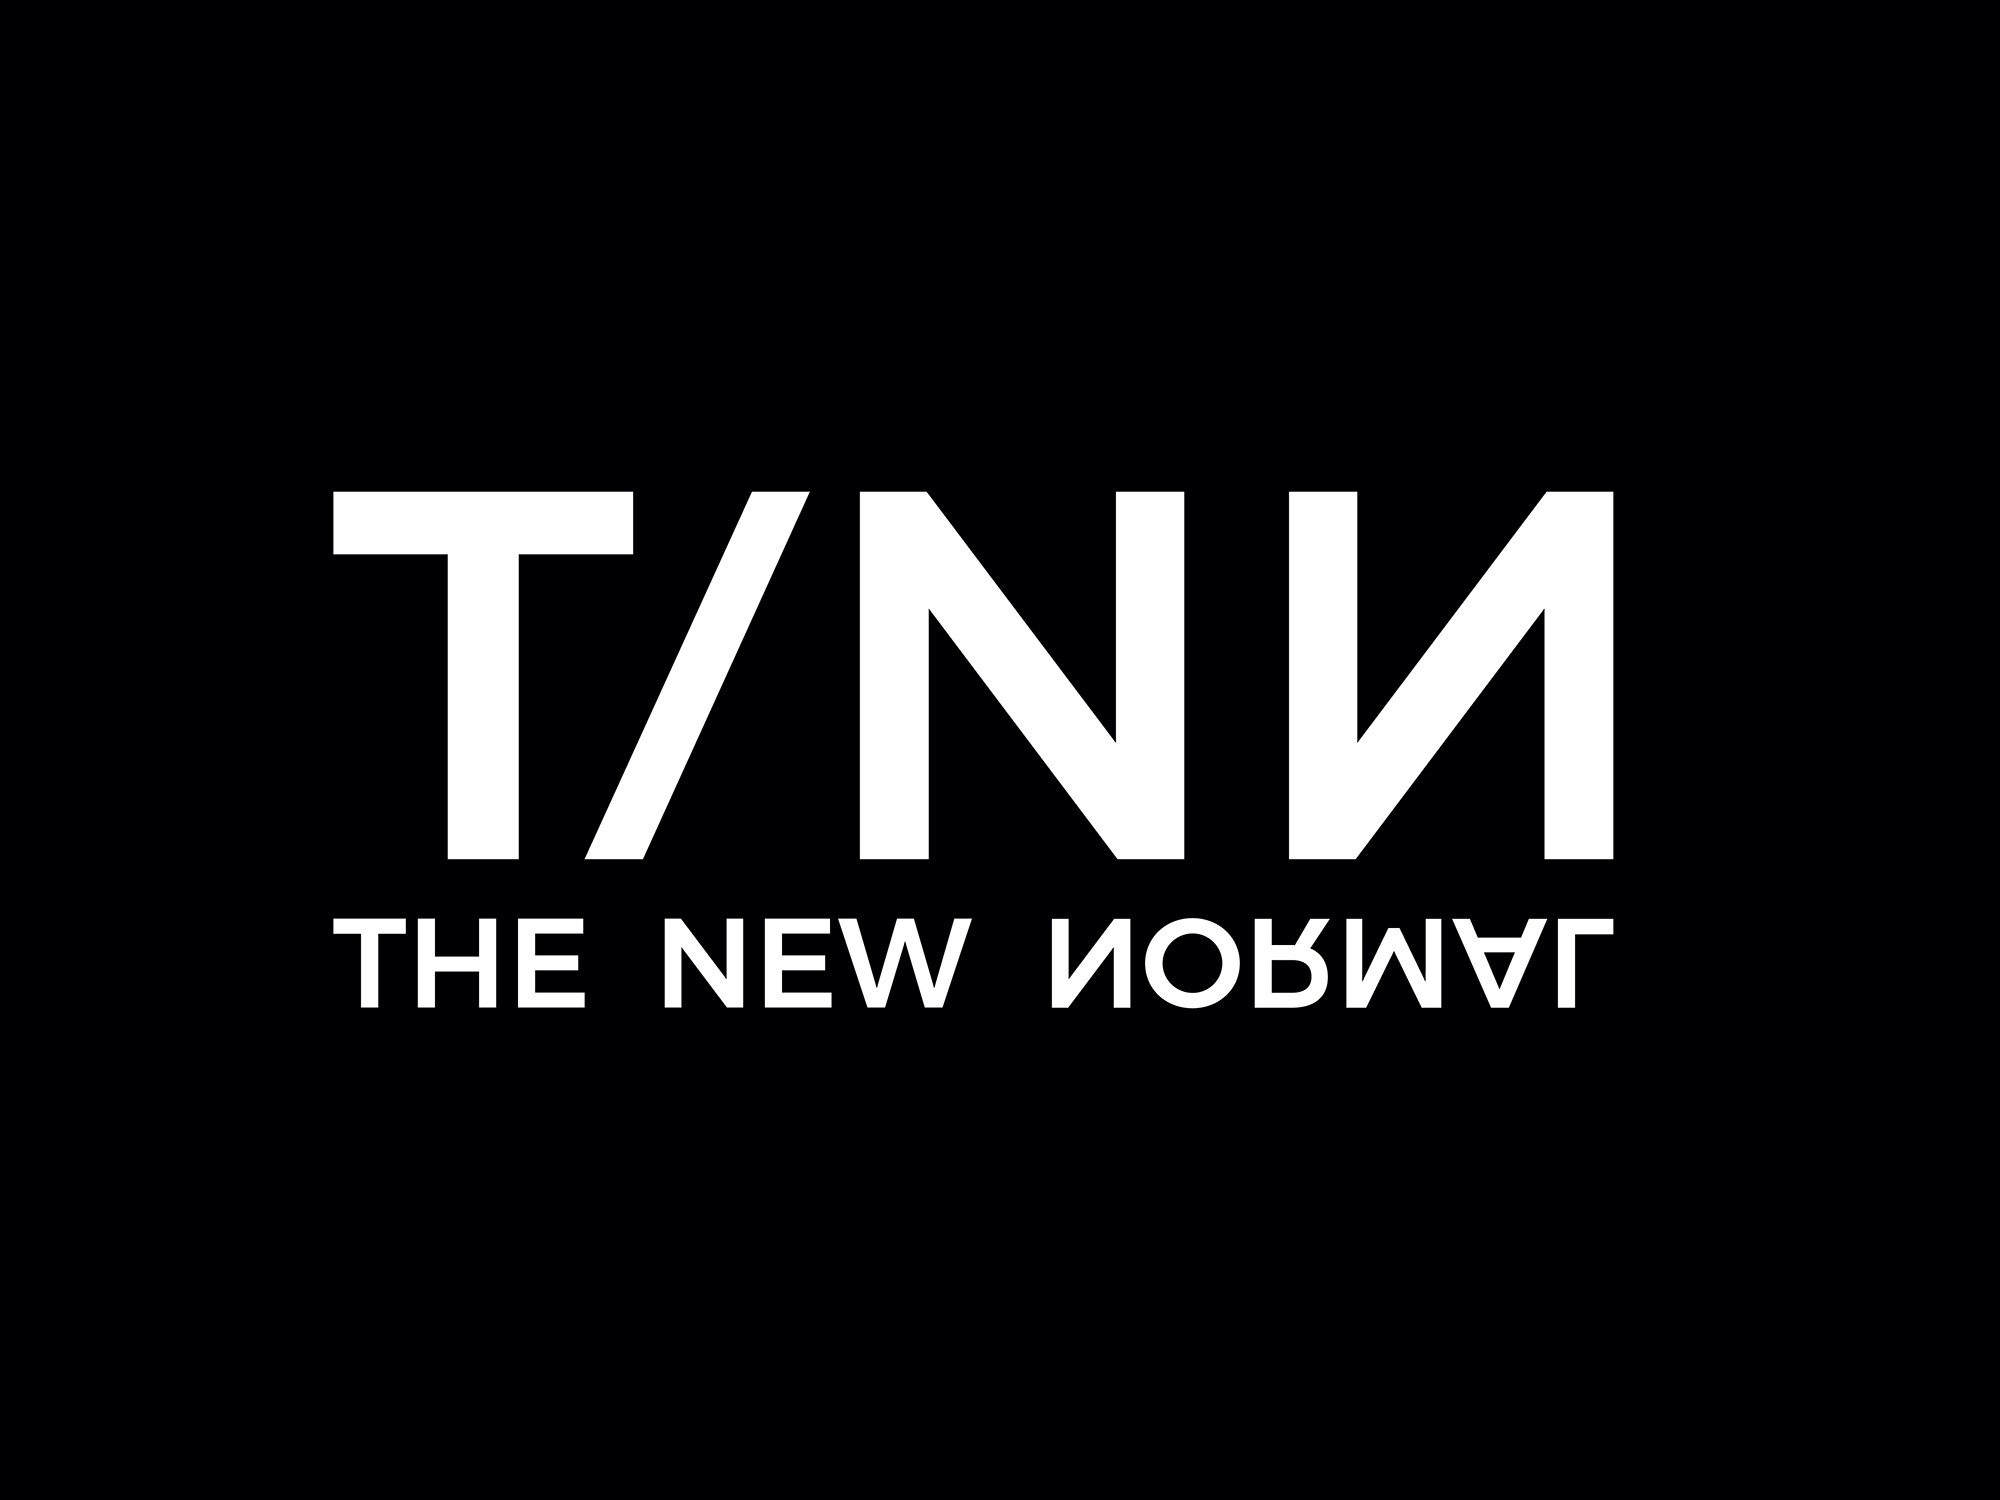 The New Normal Tnn Linkedin